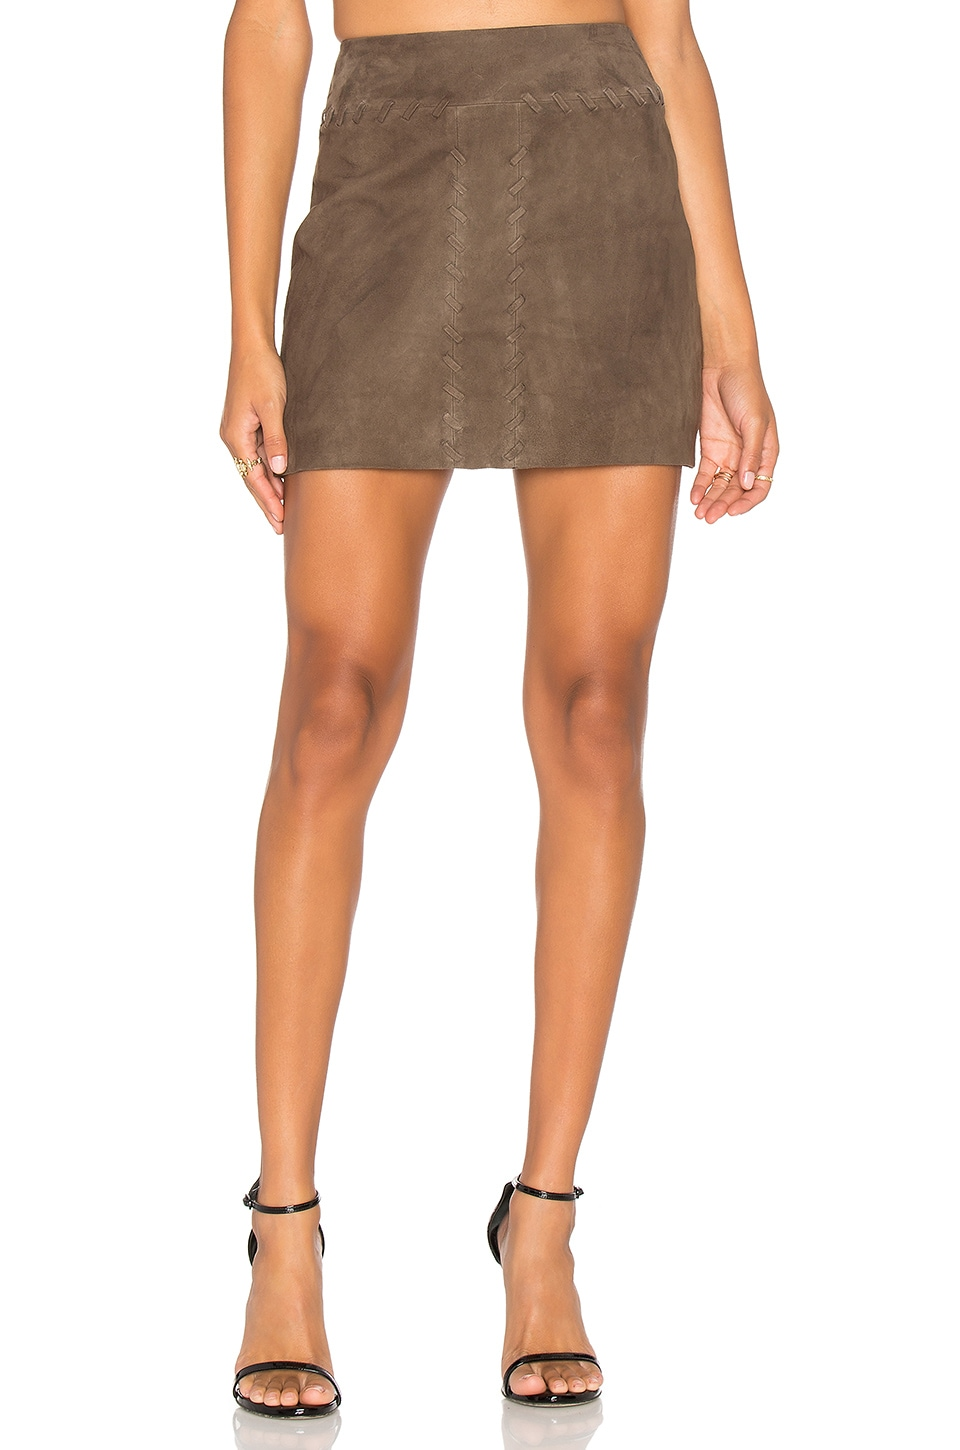 RAMY BROOK Juliana Suede Skirt in Mushroom